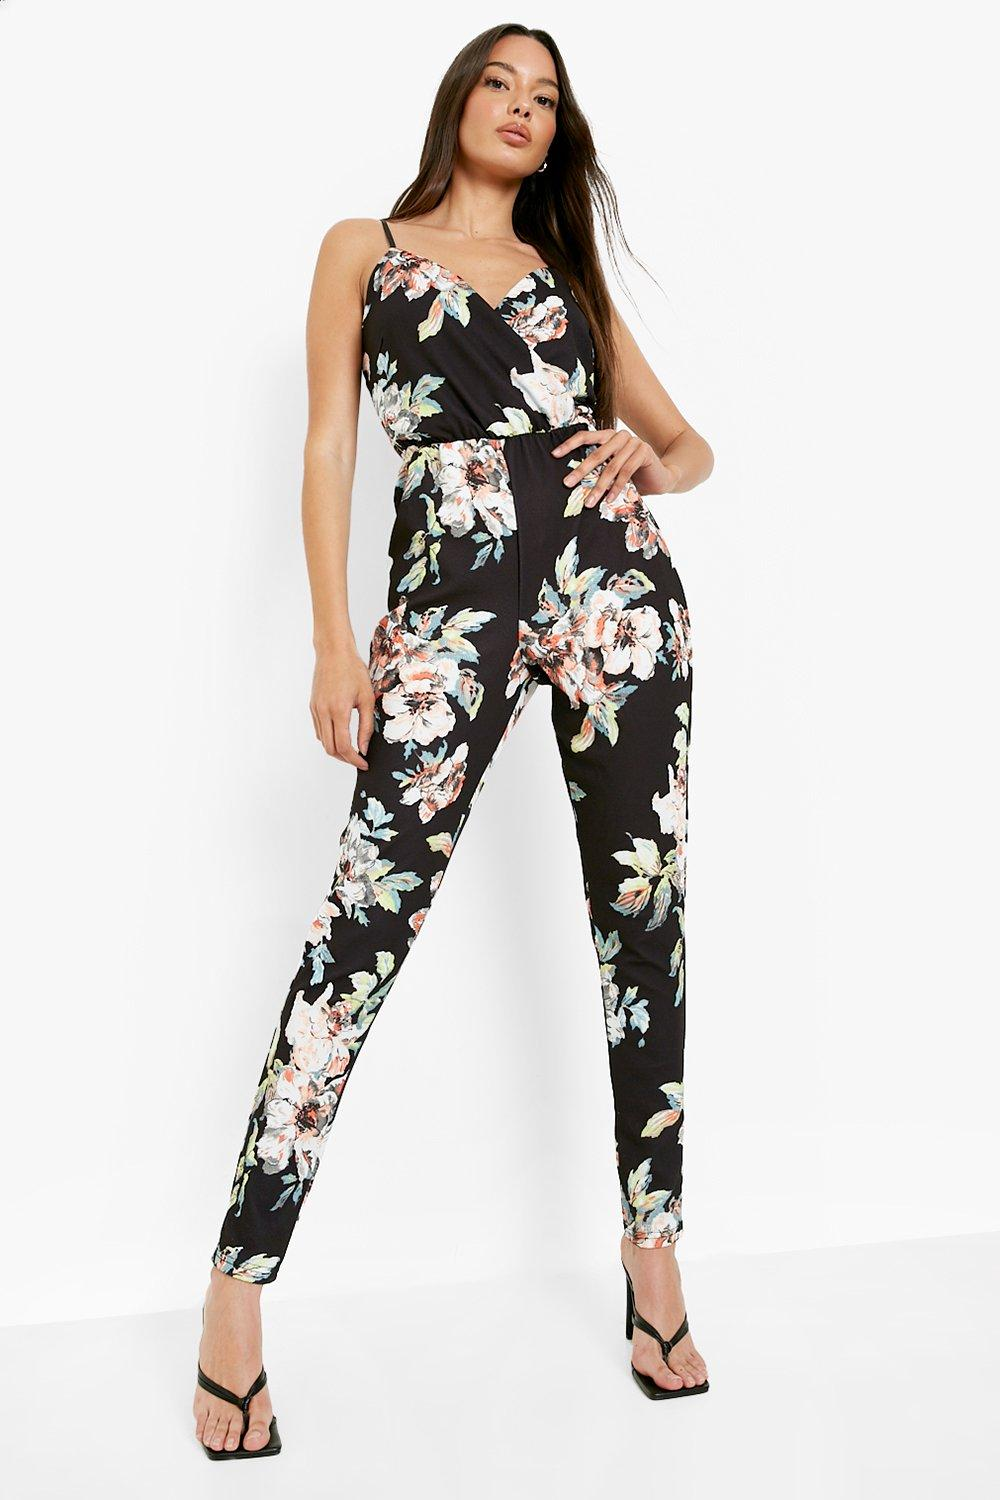 7764b56926e Womens Multi Floral Print Cami Wrap Strappy Jumpsuit. Hover to zoom